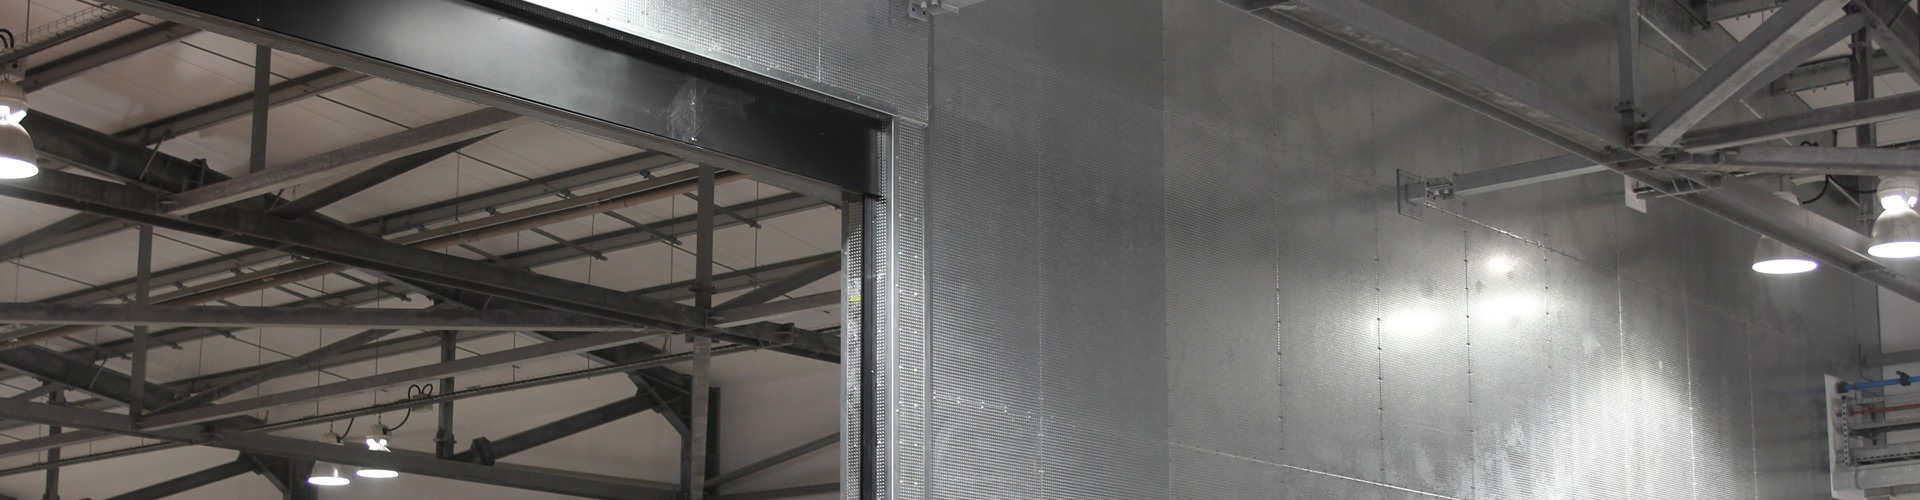 Durasteel Fire Barrier Protects Multi-Million Pound Aircraft Hanger